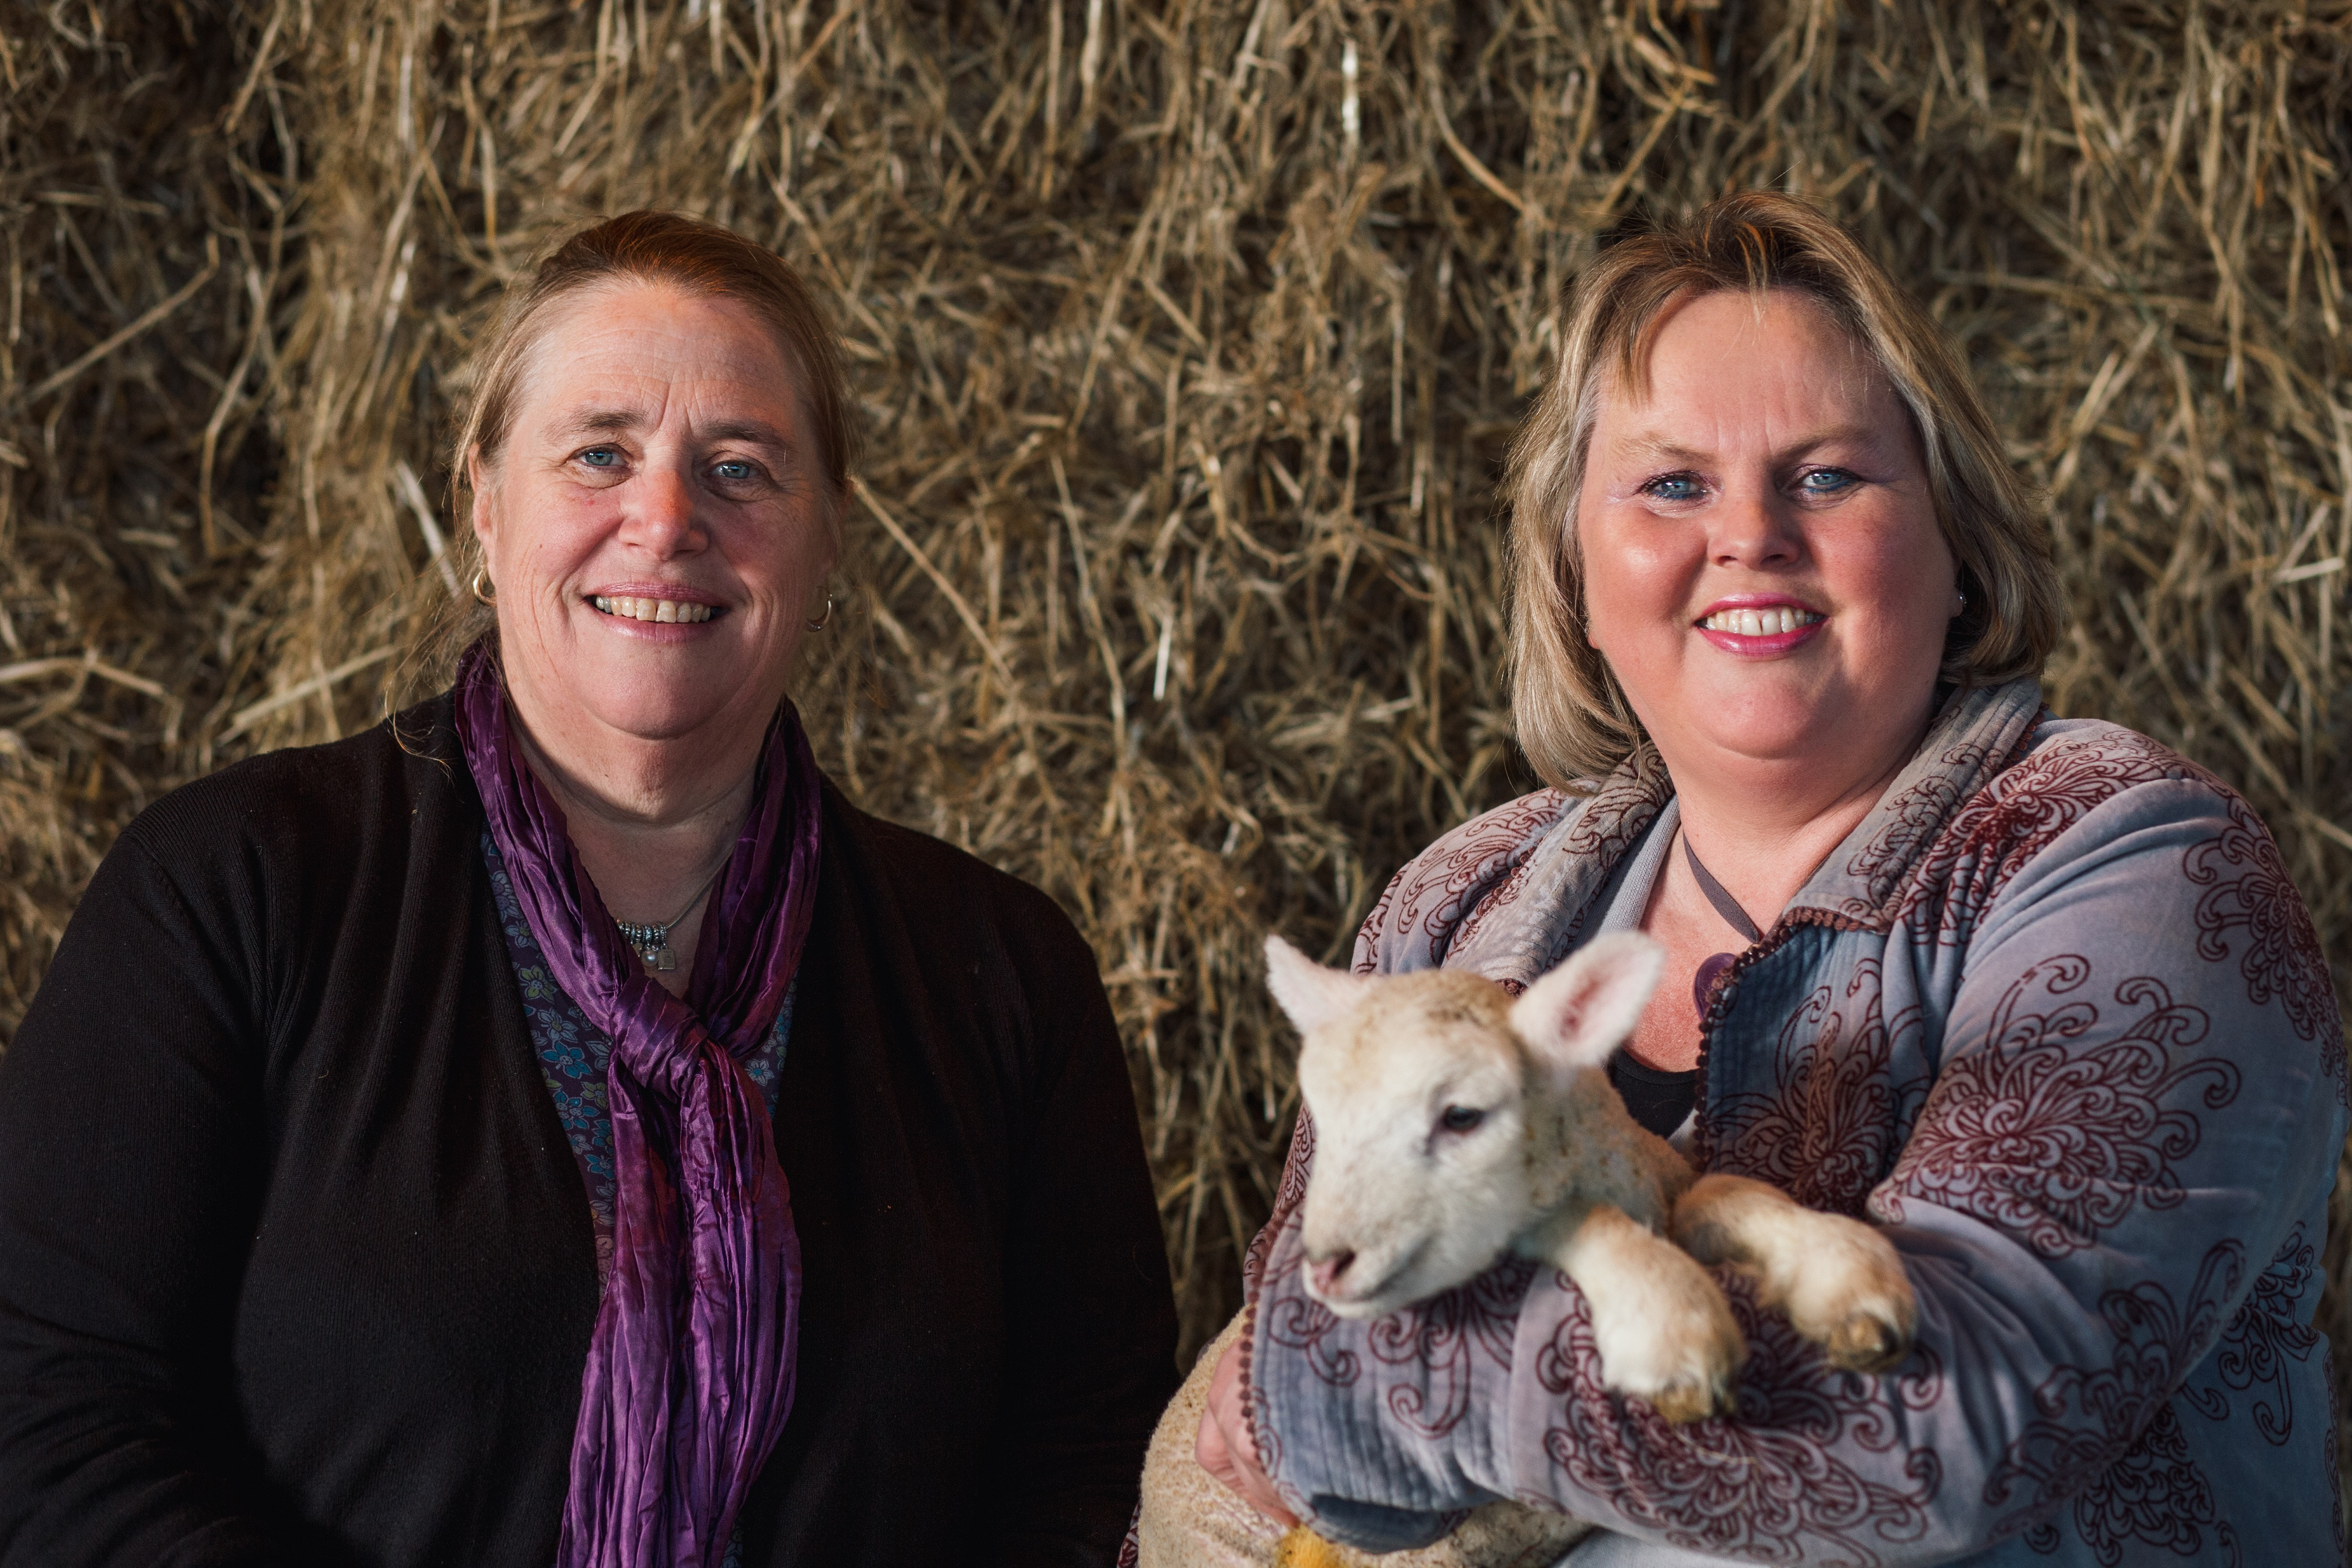 Nicola Ralph, vice-chair of Dorset Agricultural Society, and Rebecca Hill, chair of Dorset Agricultural Society